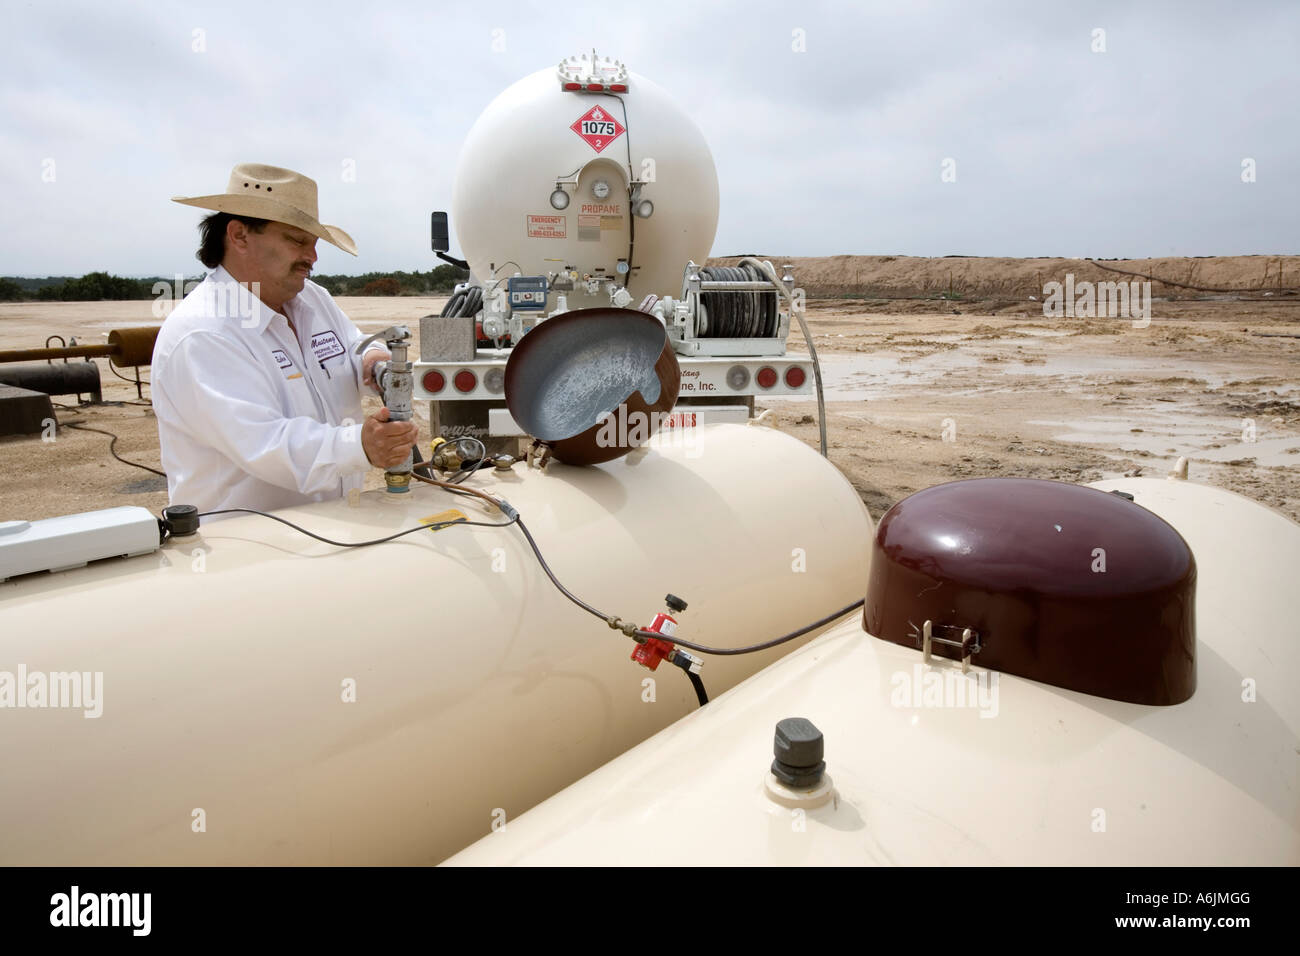 Delivering propane - Stock Image